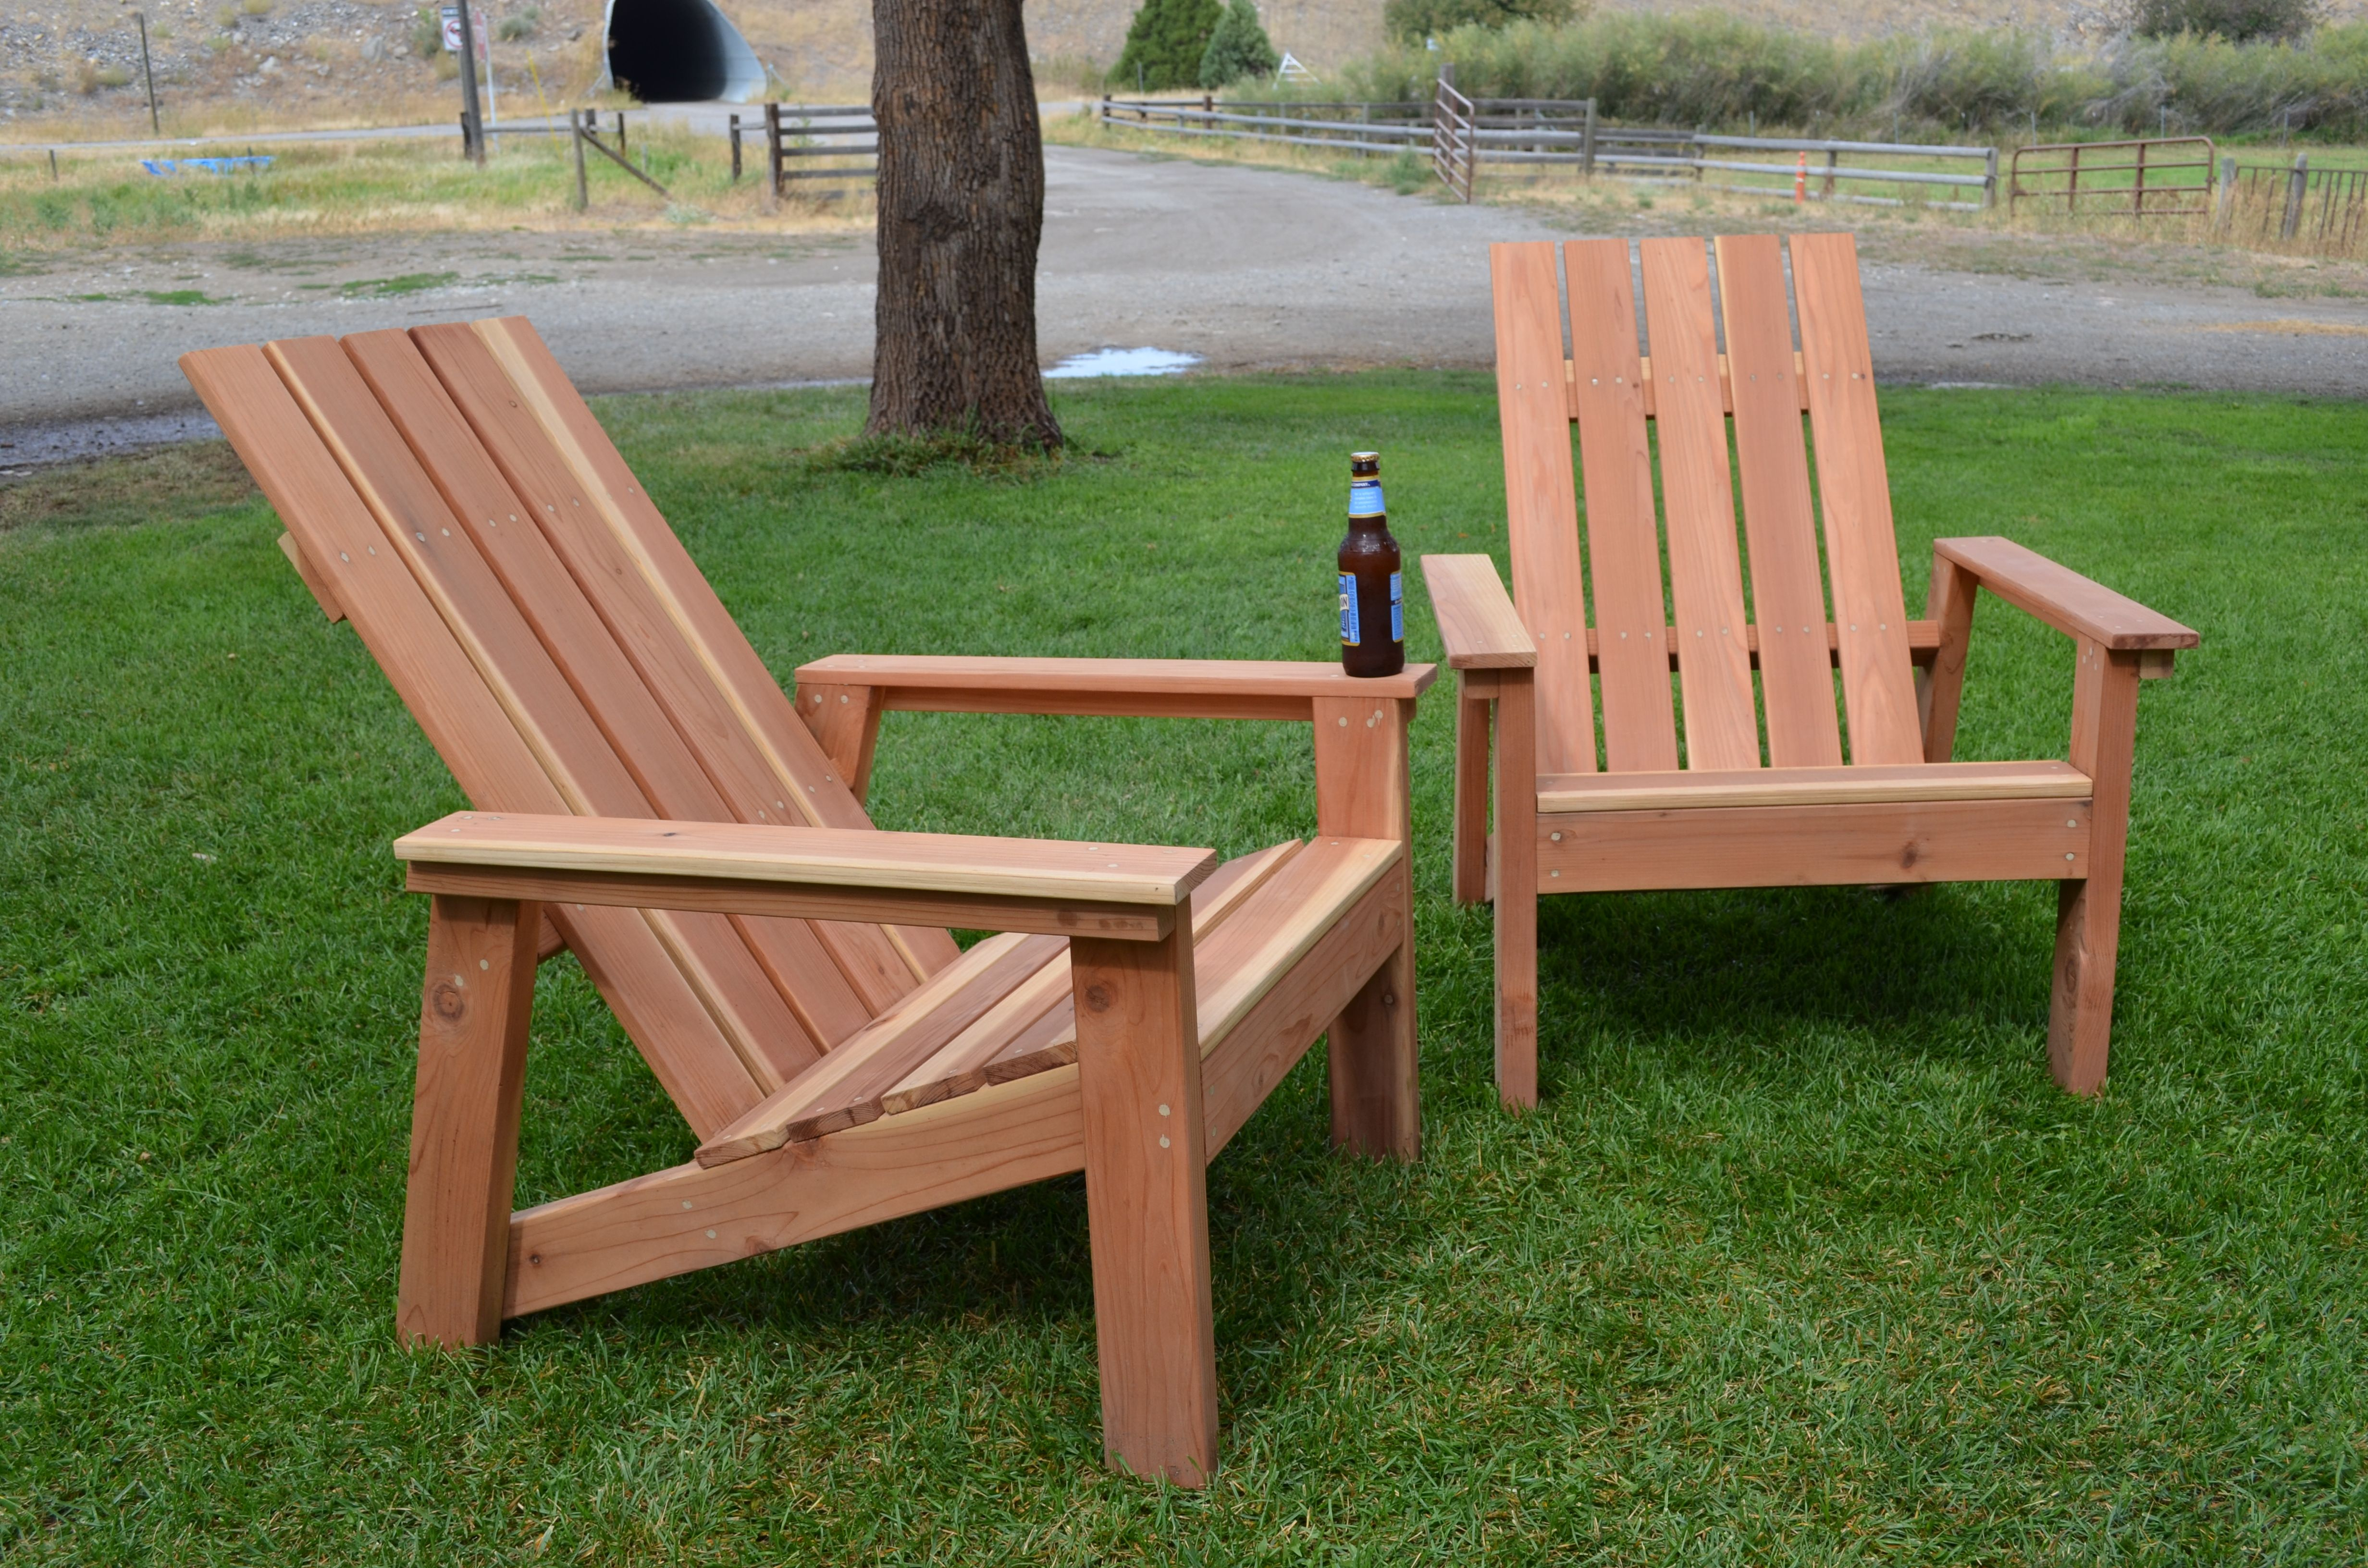 First Build Redwood Adirondack Chairs Adirondack Chairs Diy Outdoor Furniture Plans Diy Chair